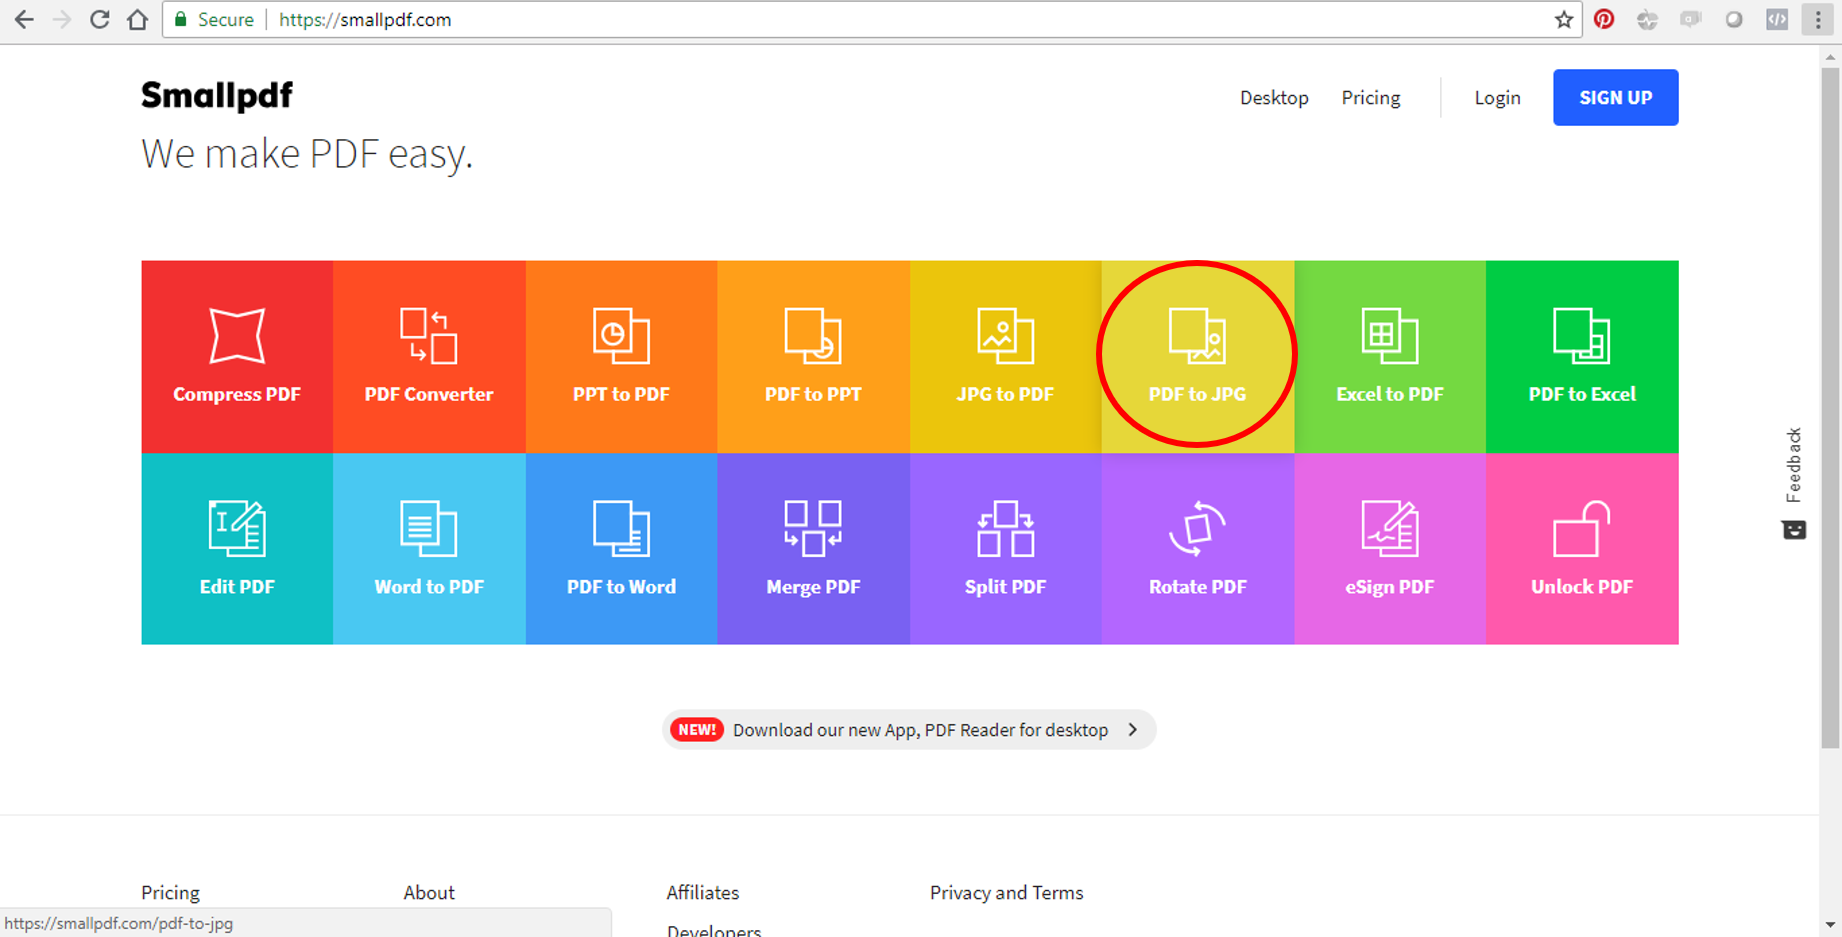 Blog rd2rd choose pdf to jpg from the available options browse and upload your pdf file select convert entire pages after converted download all pages as a zip fandeluxe Image collections